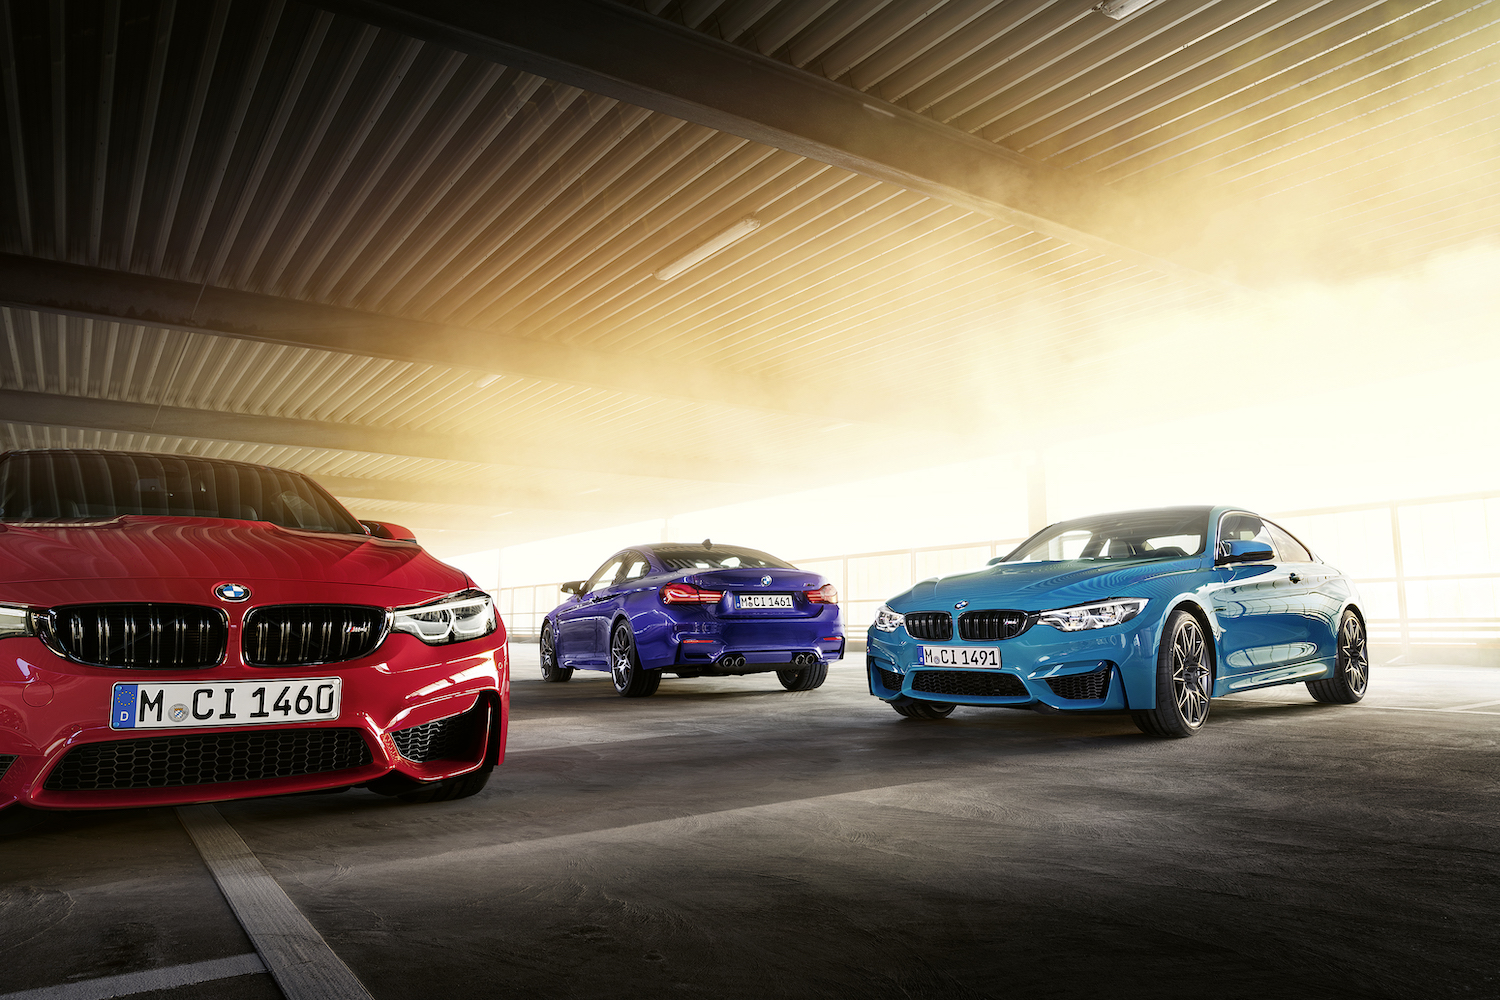 2020 BMW M4 Edition ///M Heritage Coupe is the latest special-edition M car thumbnail